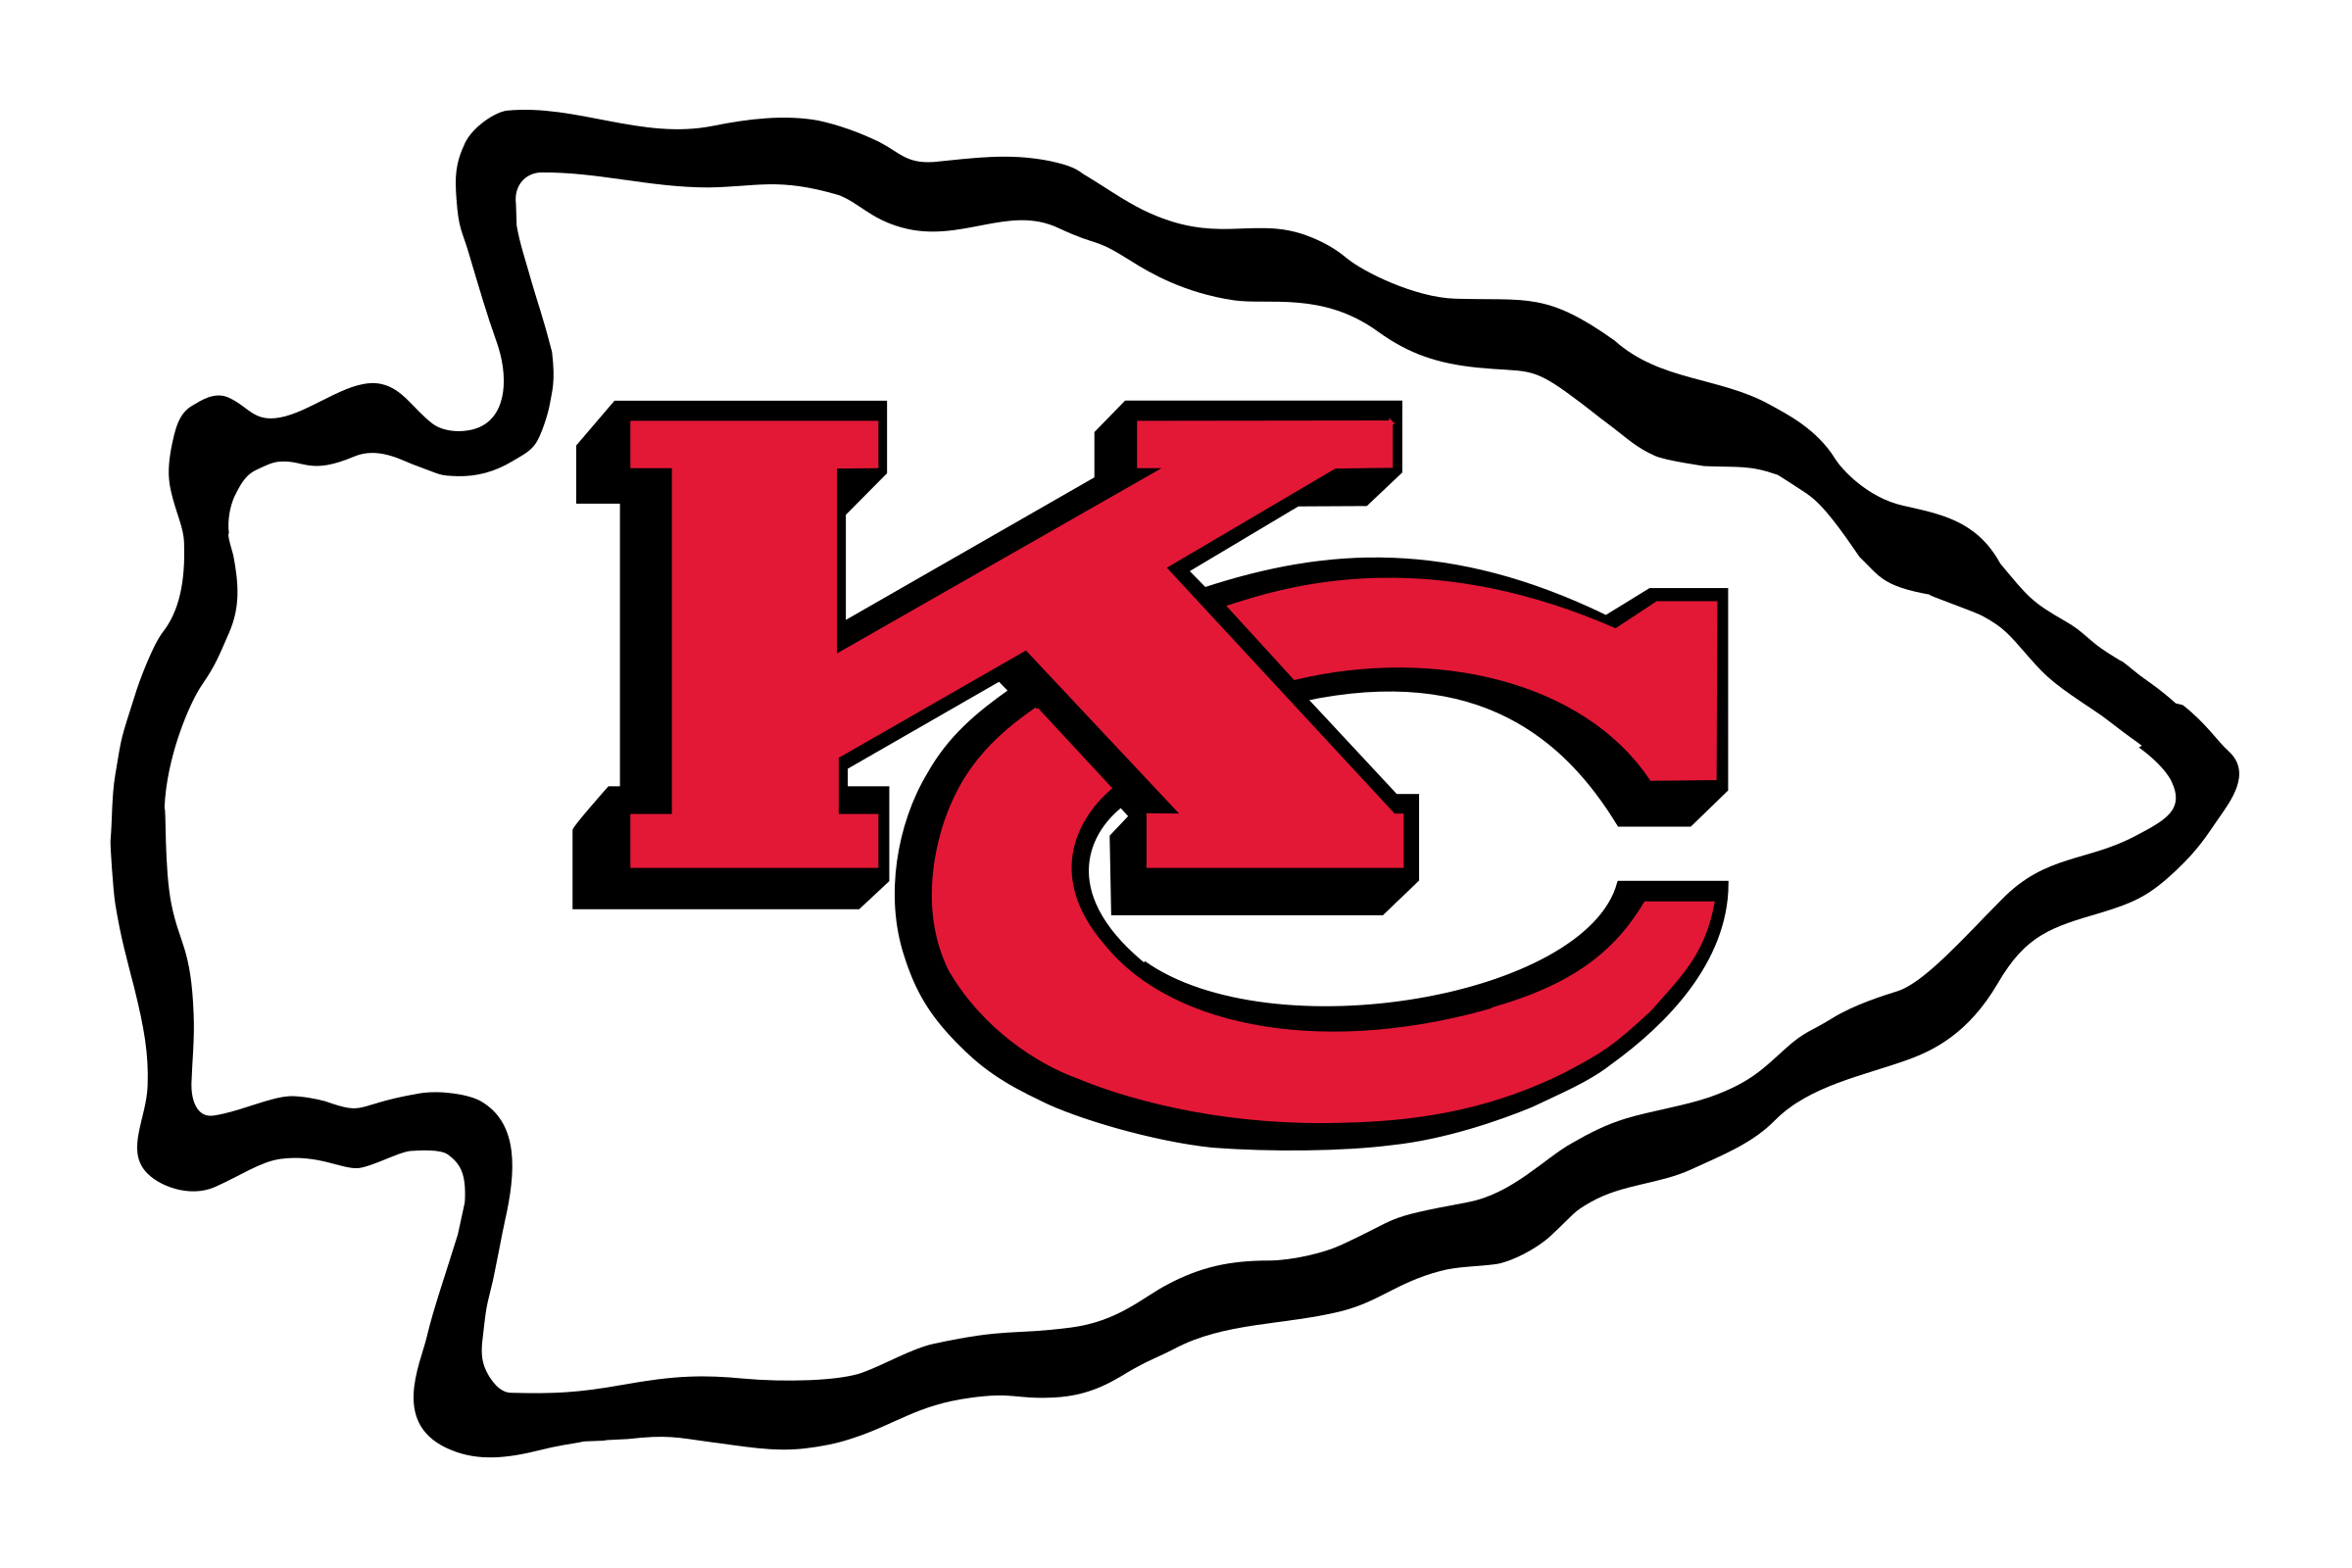 2400x1600 2018 Nfl Draft Recap Kansas City Chiefs Trsn